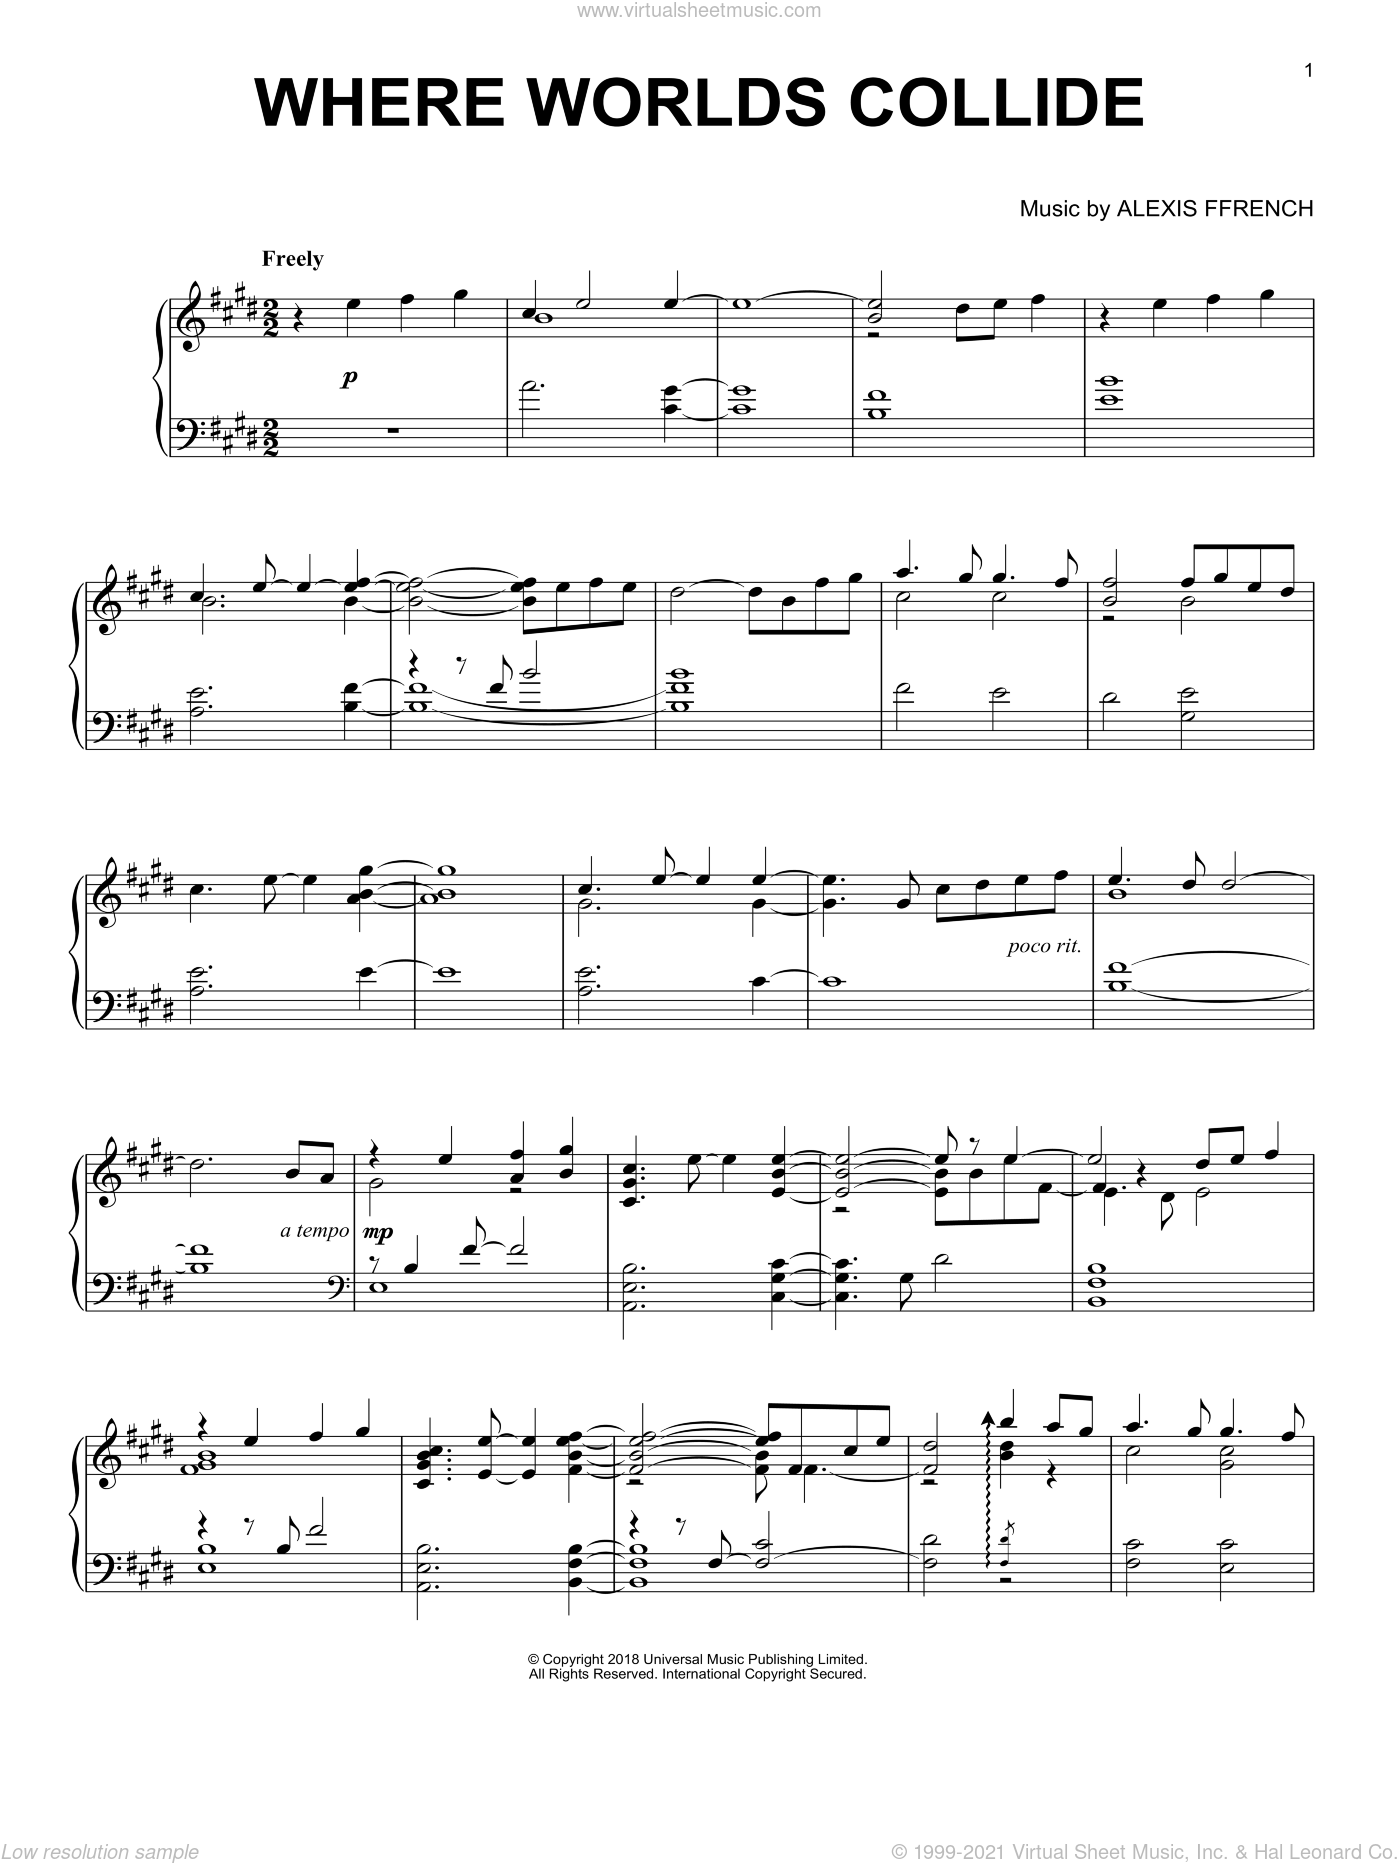 Where Worlds Collide sheet music for piano solo by Alexis Ffrench, classical score, intermediate skill level